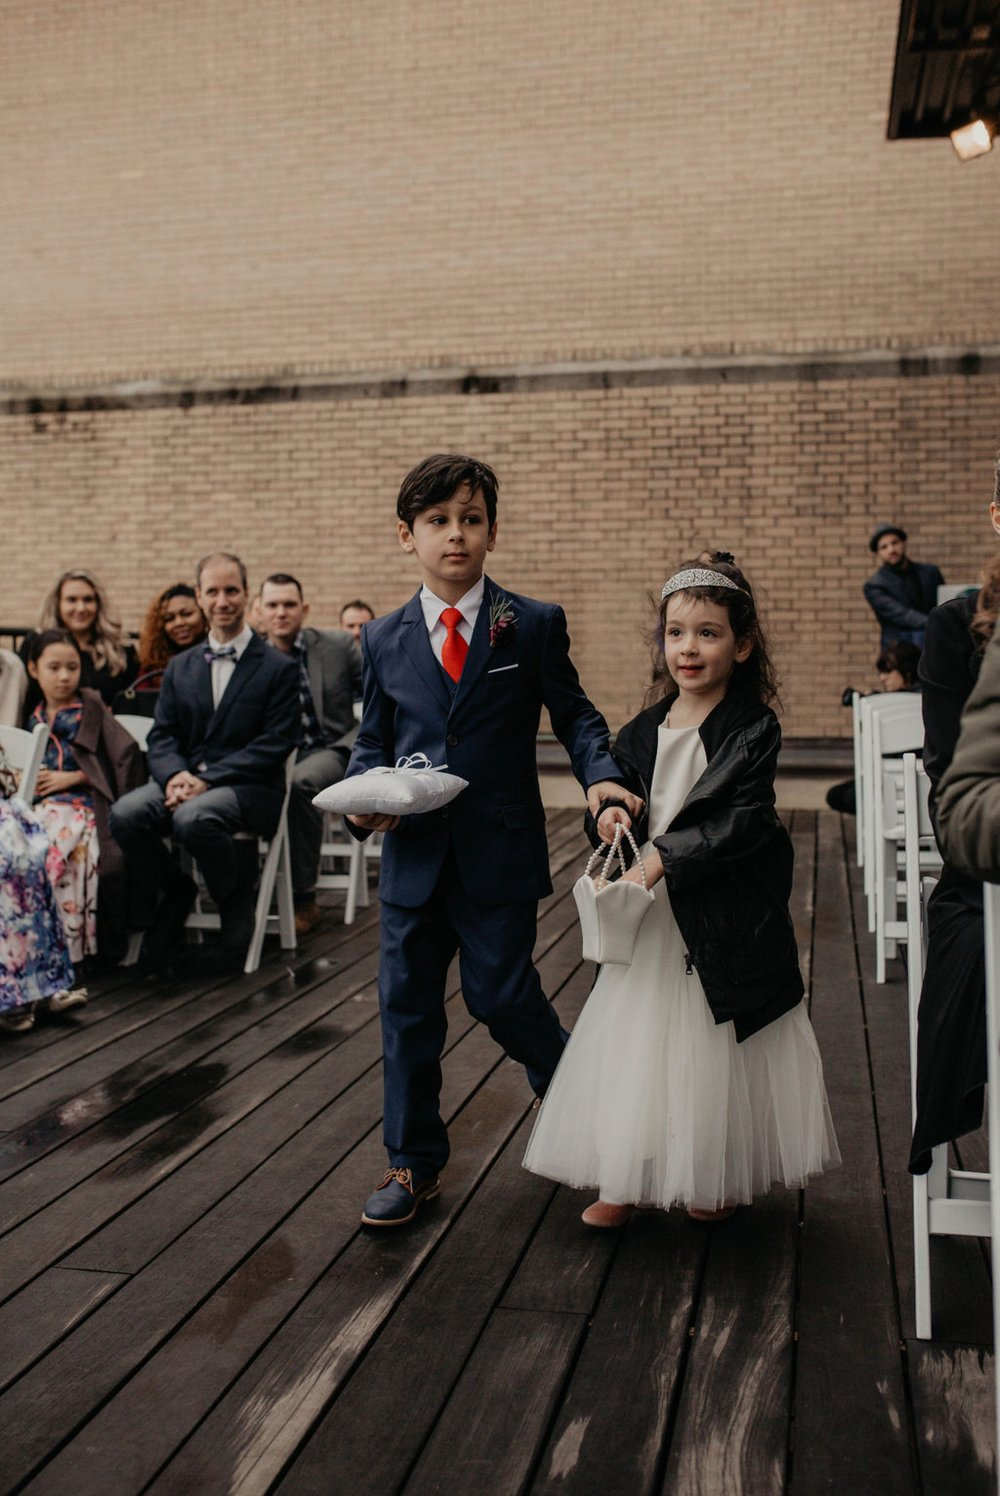 Ring BEarer and flower girl in leather jacket walking down the aisle - Wedding Ceremony Details on a rooftop terrace with the skyline in the background - Matt Smarsh and Johanna Dye - Raleigh North Carolina Urban Downtown Wedding at the Glass Box at 230